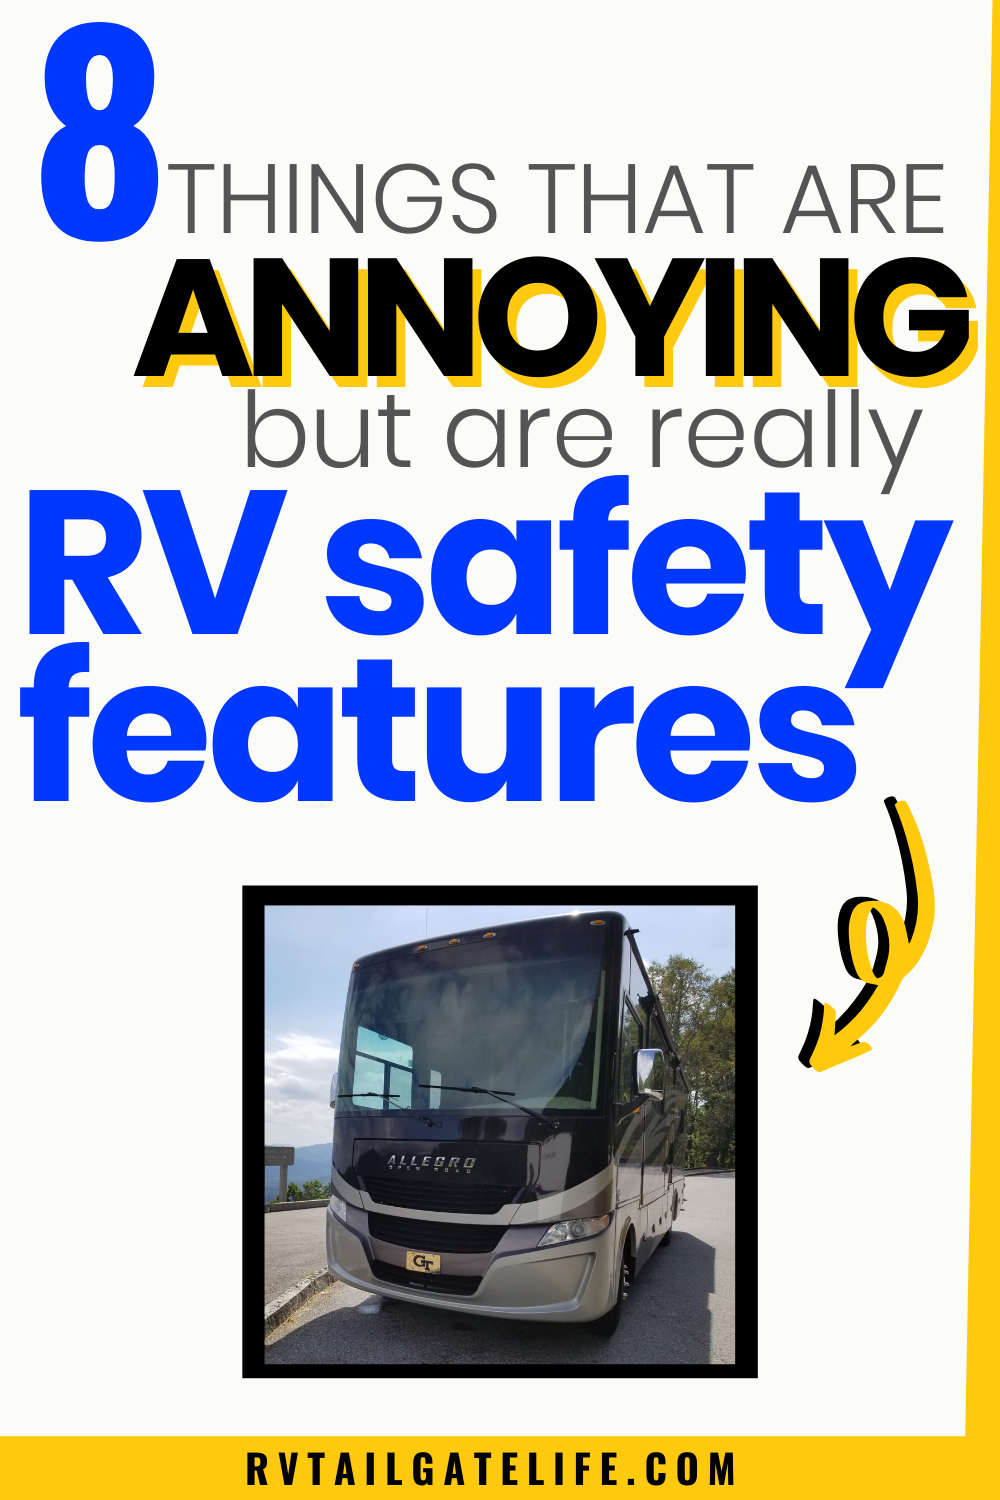 8 Annoying Things That Are Actually RV Safety Features in